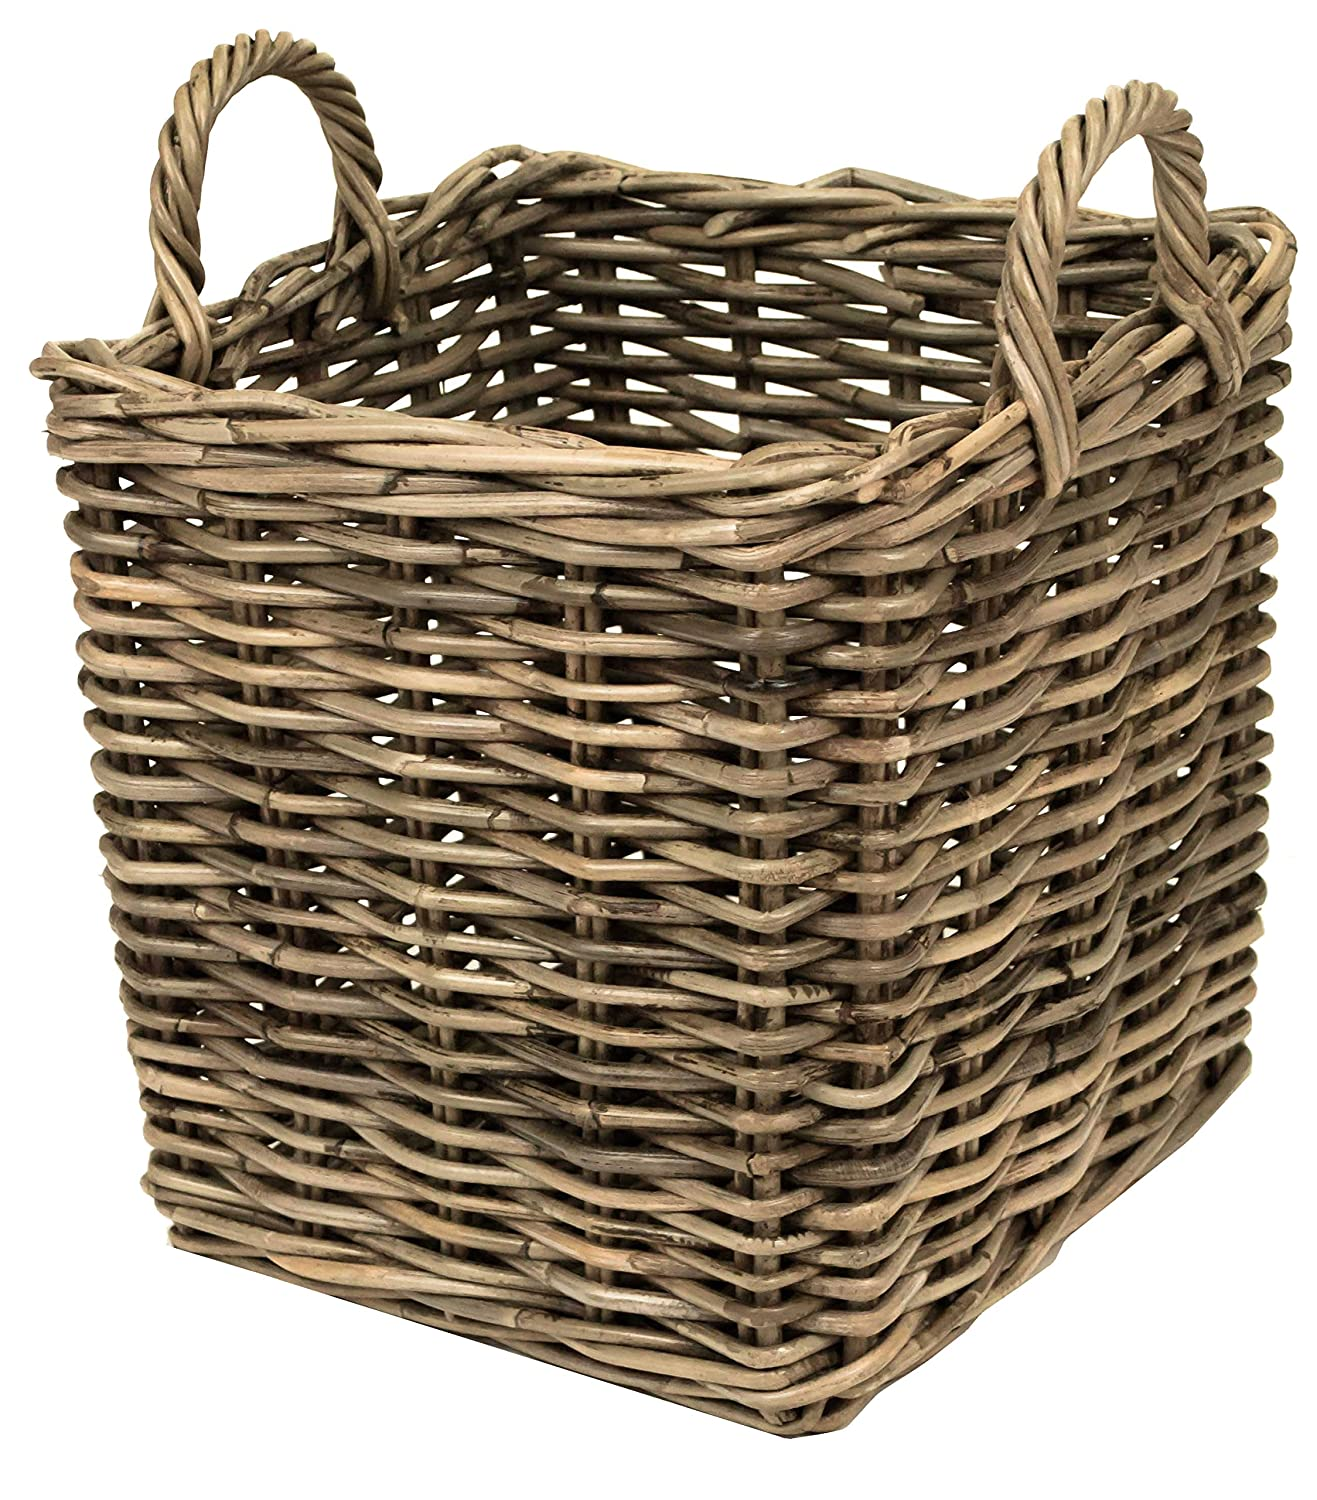 east2eden Grey Kubu Rattan Wicker Strong Square Storage Display Kindling Log Basket (Small) e2e